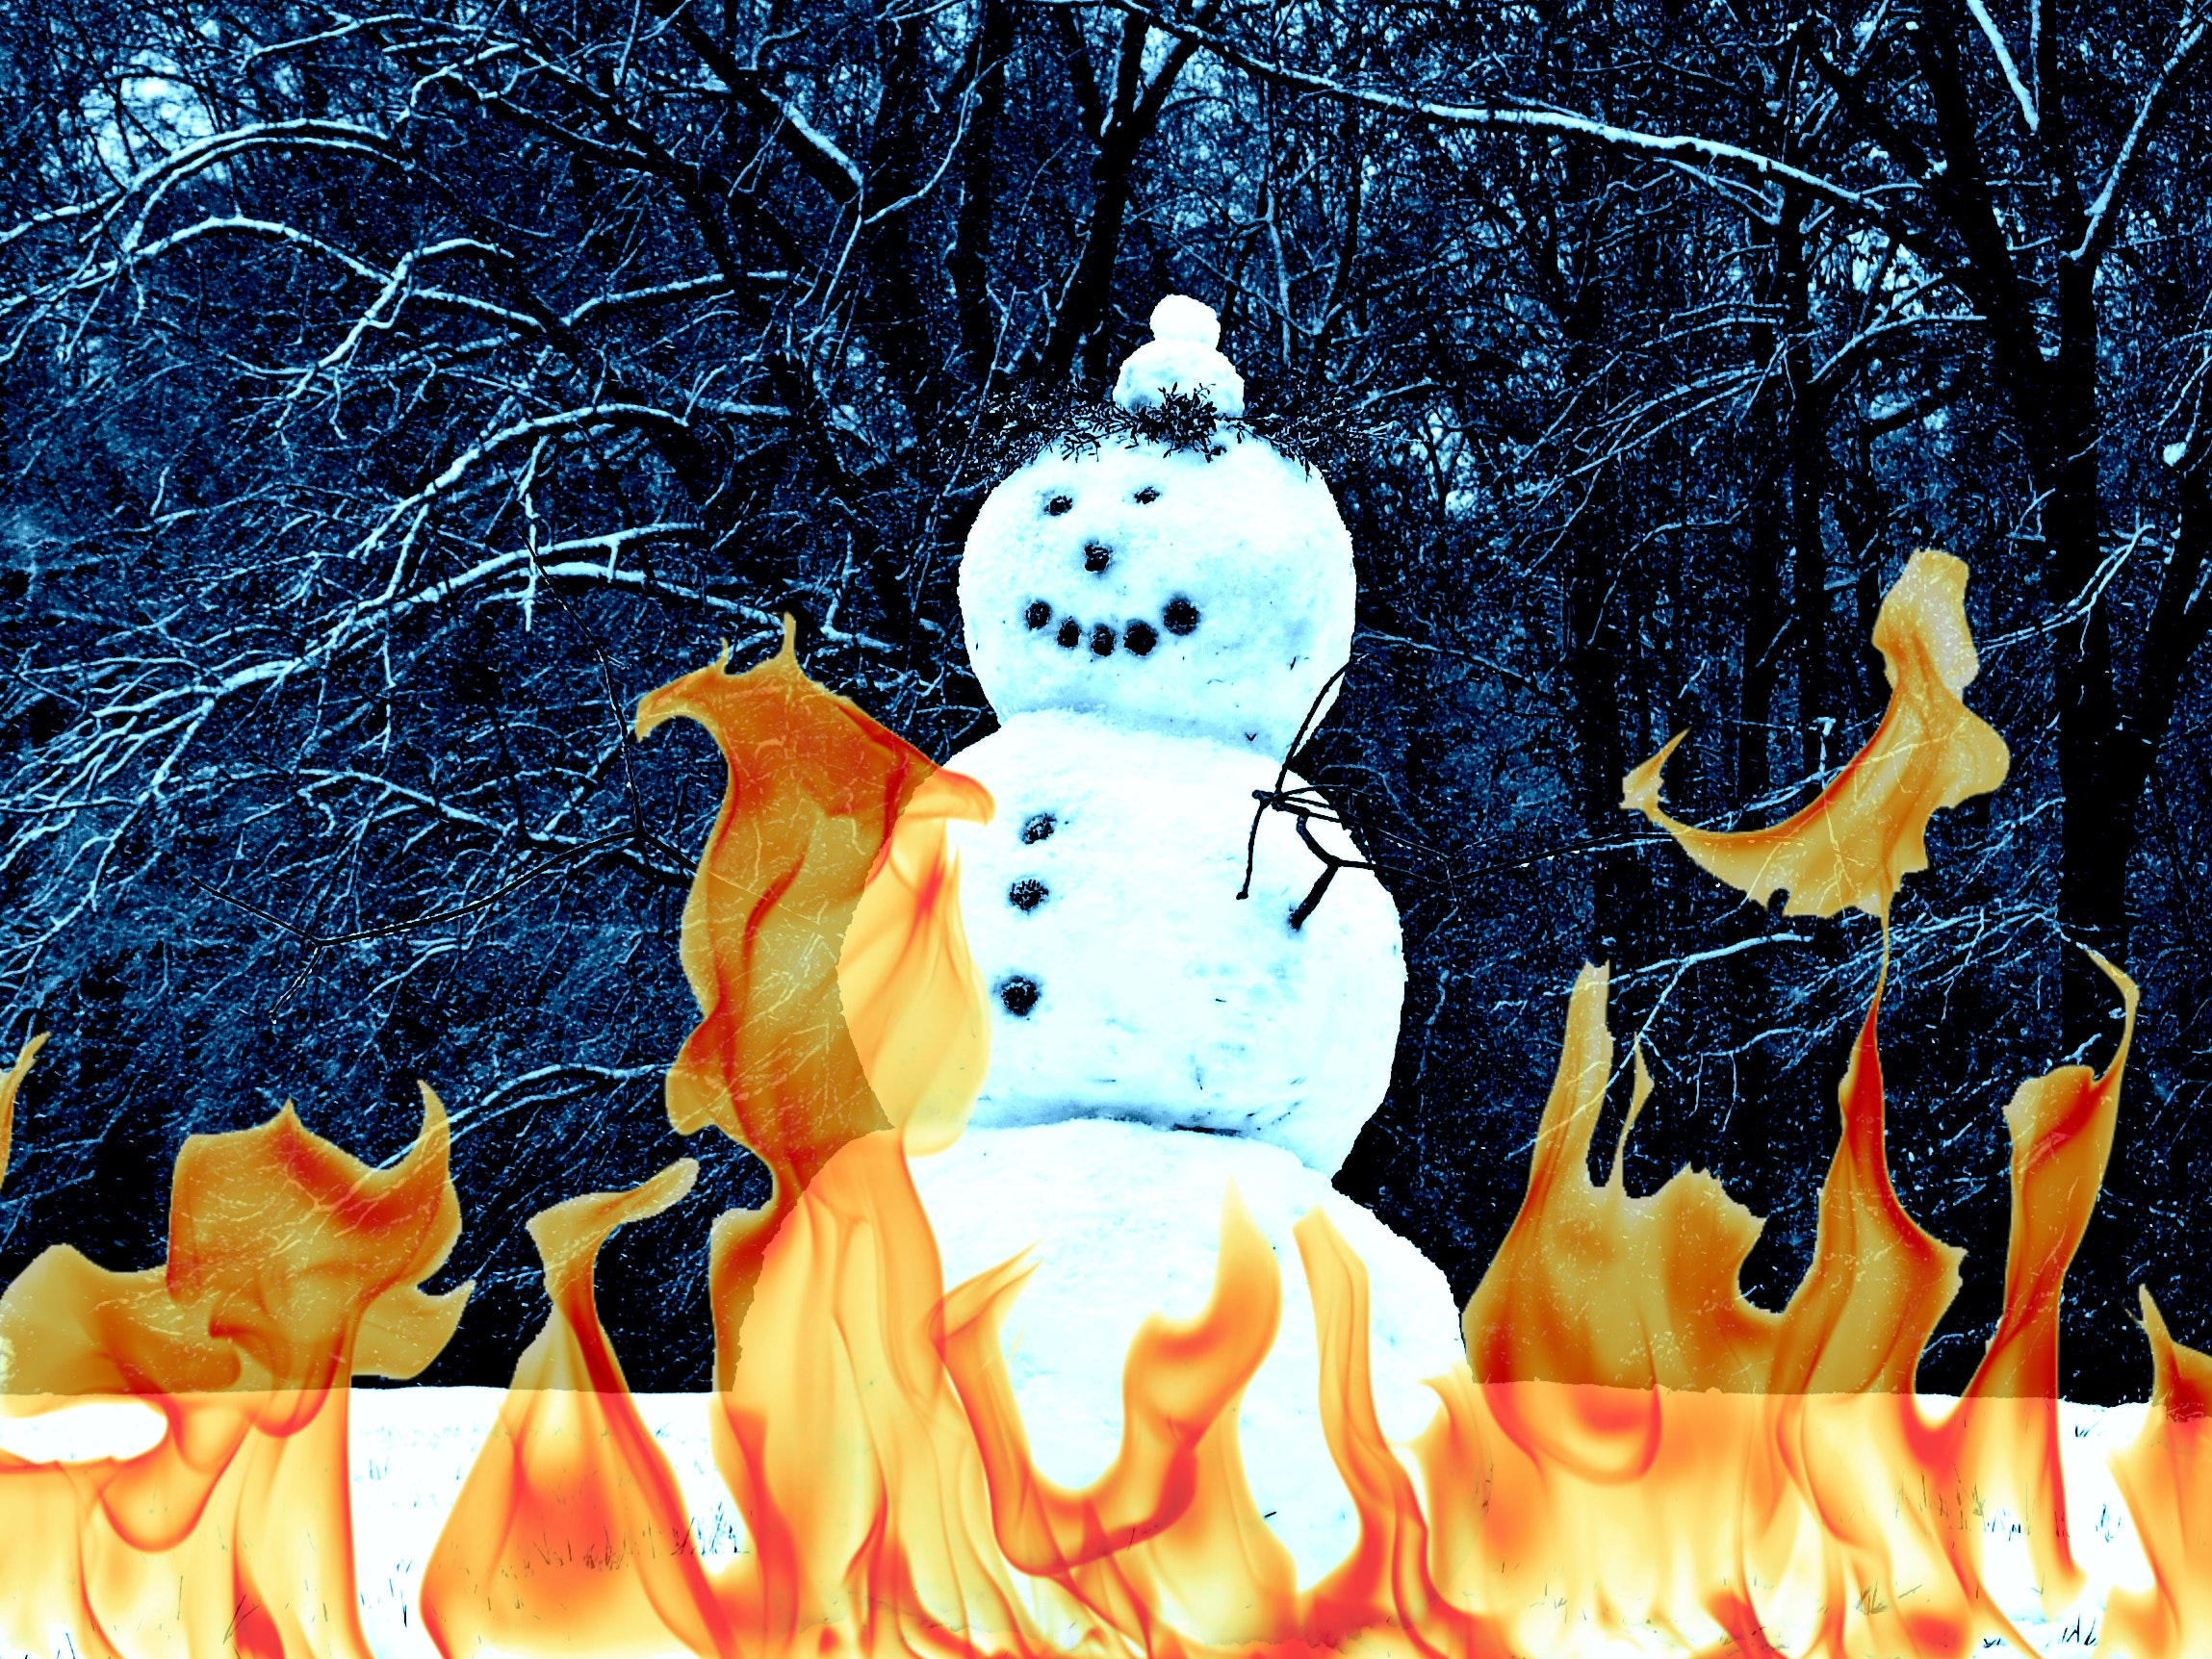 Why Does Snow Burn?